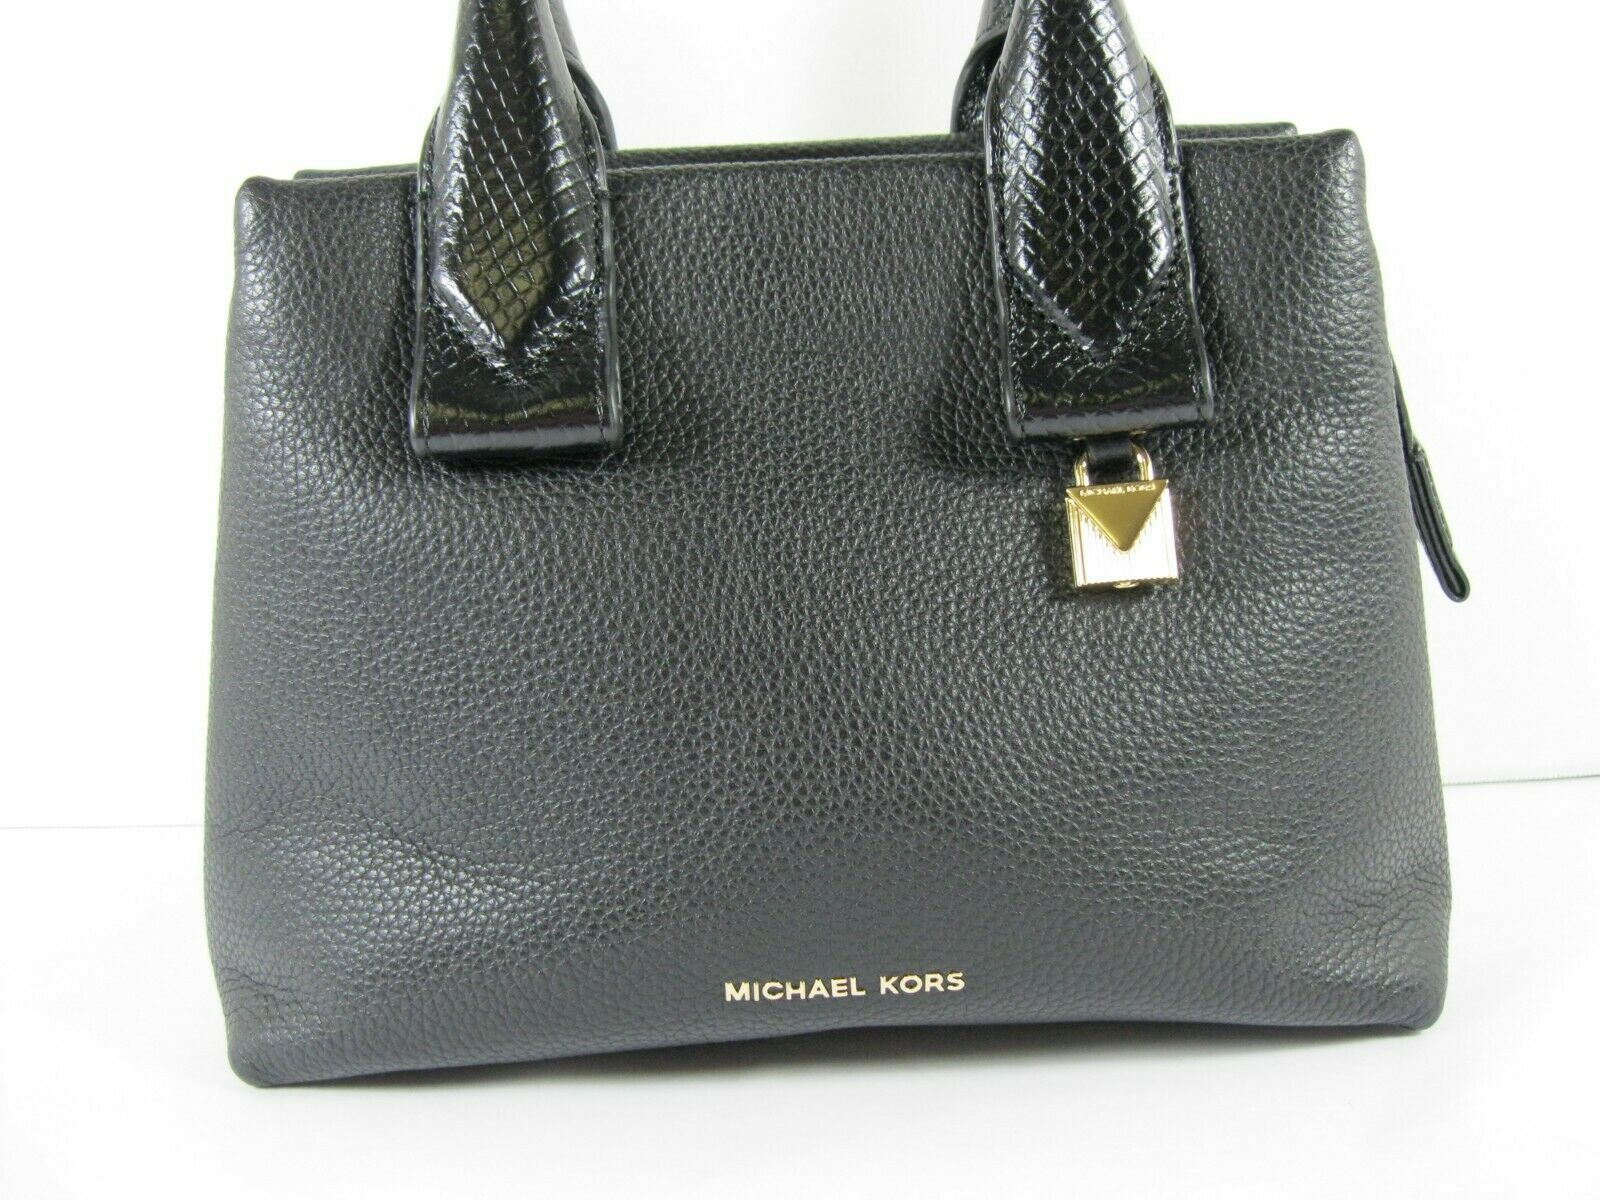 Michael Kors NEW Black Leather Crossbody Messenger Hand Bag Pebbled Gold X image 2